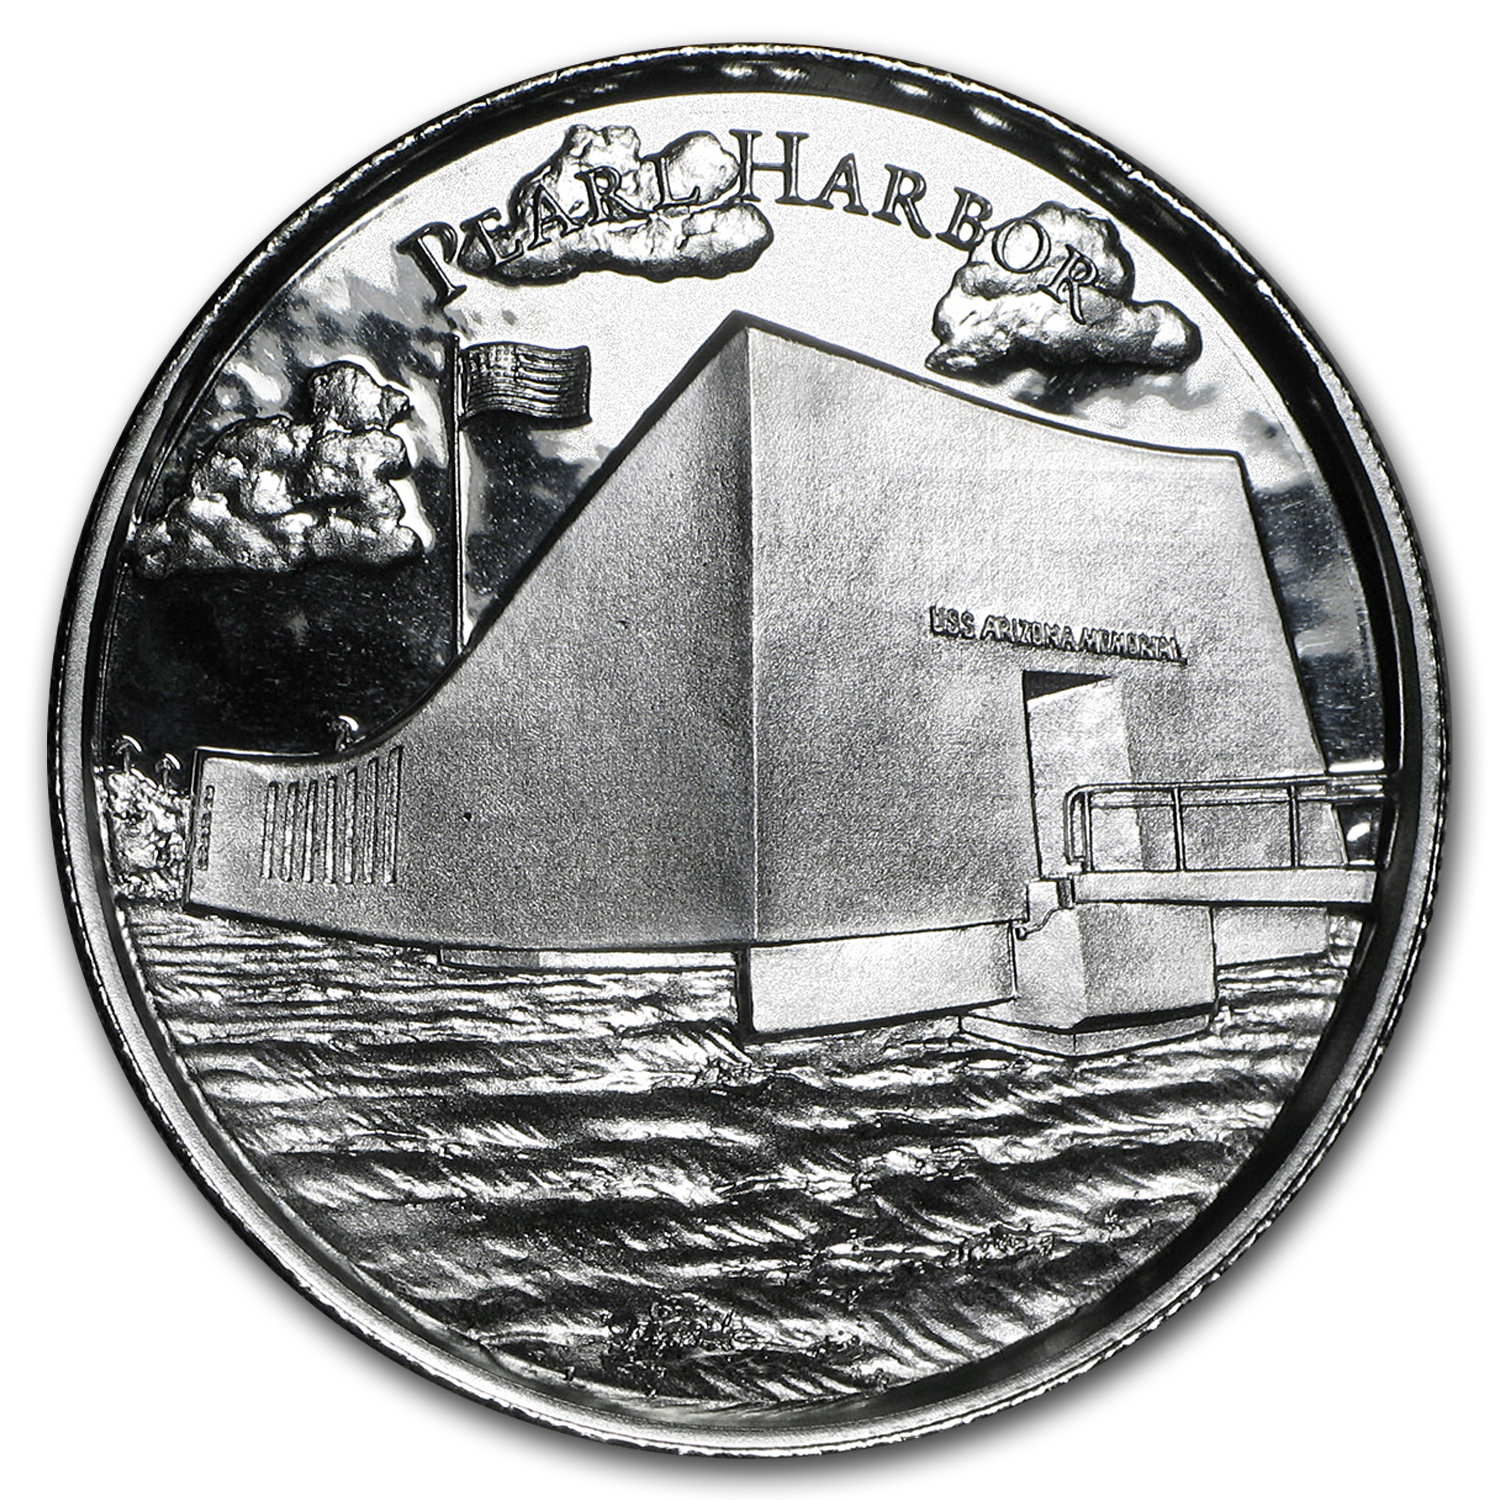 2 oz Silver Round - Pearl Harbor (Ultra High Relief)